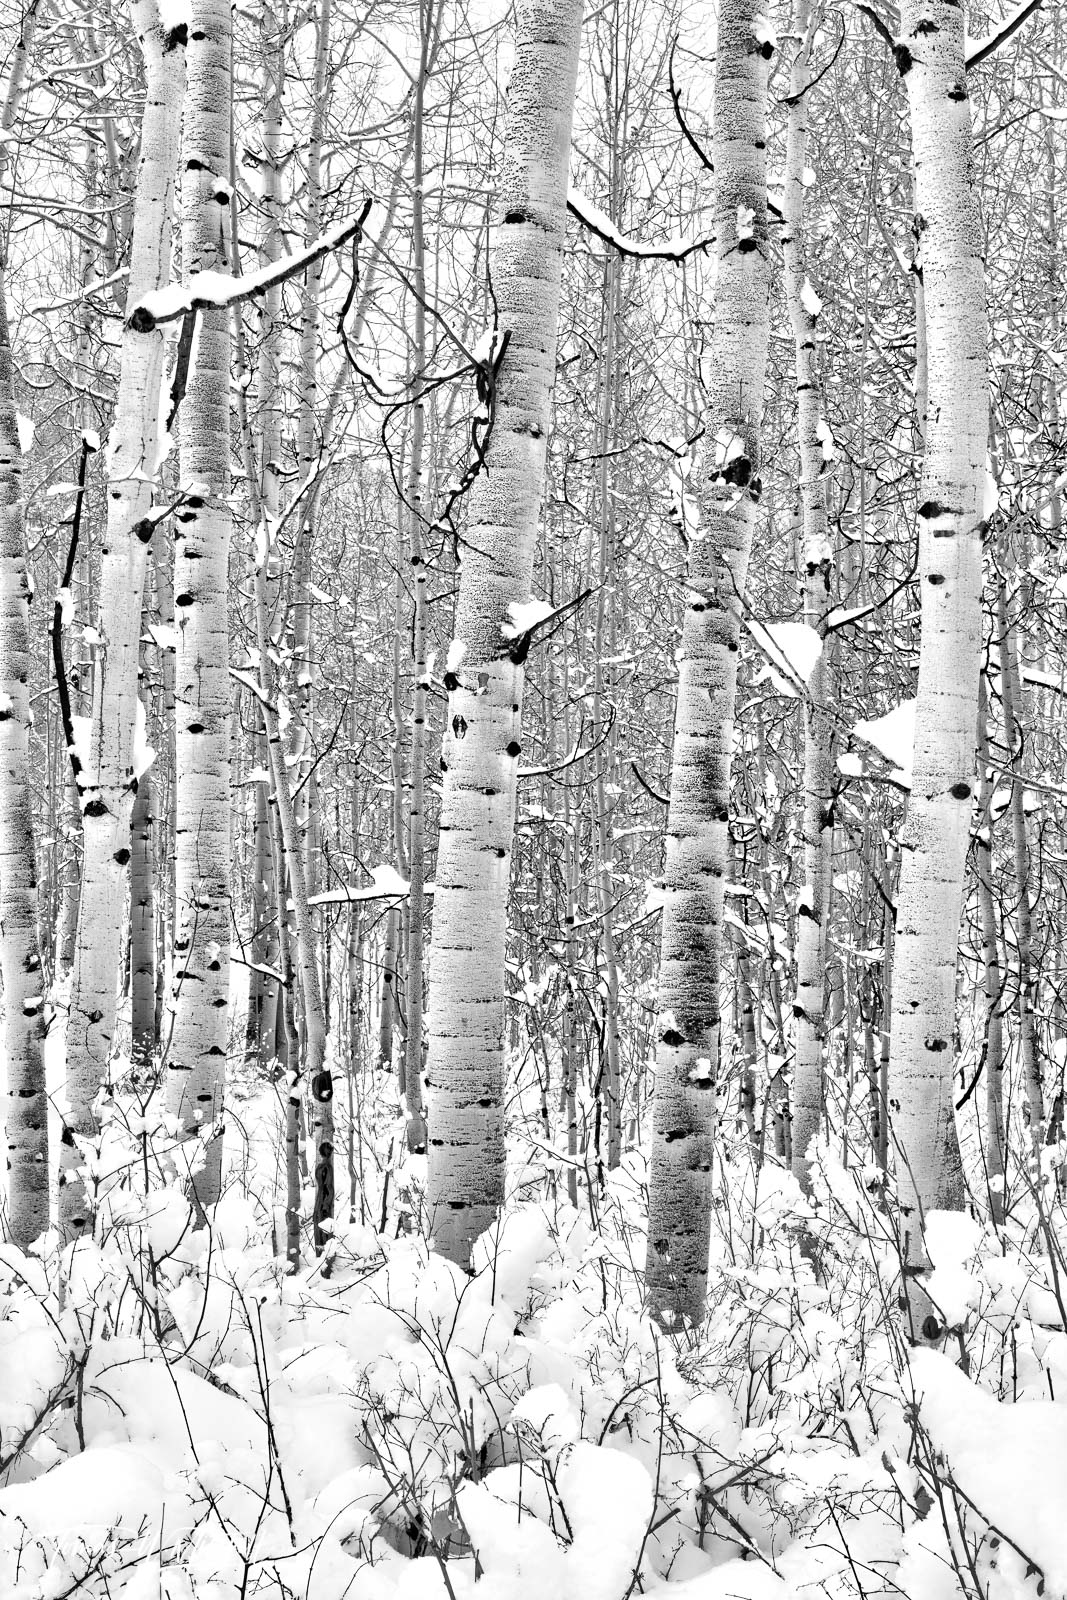 UINTA-WASATCH-CACHE NATIONAL FOREST, UTAH, aspen trees, winter, forest, snow, white, photo